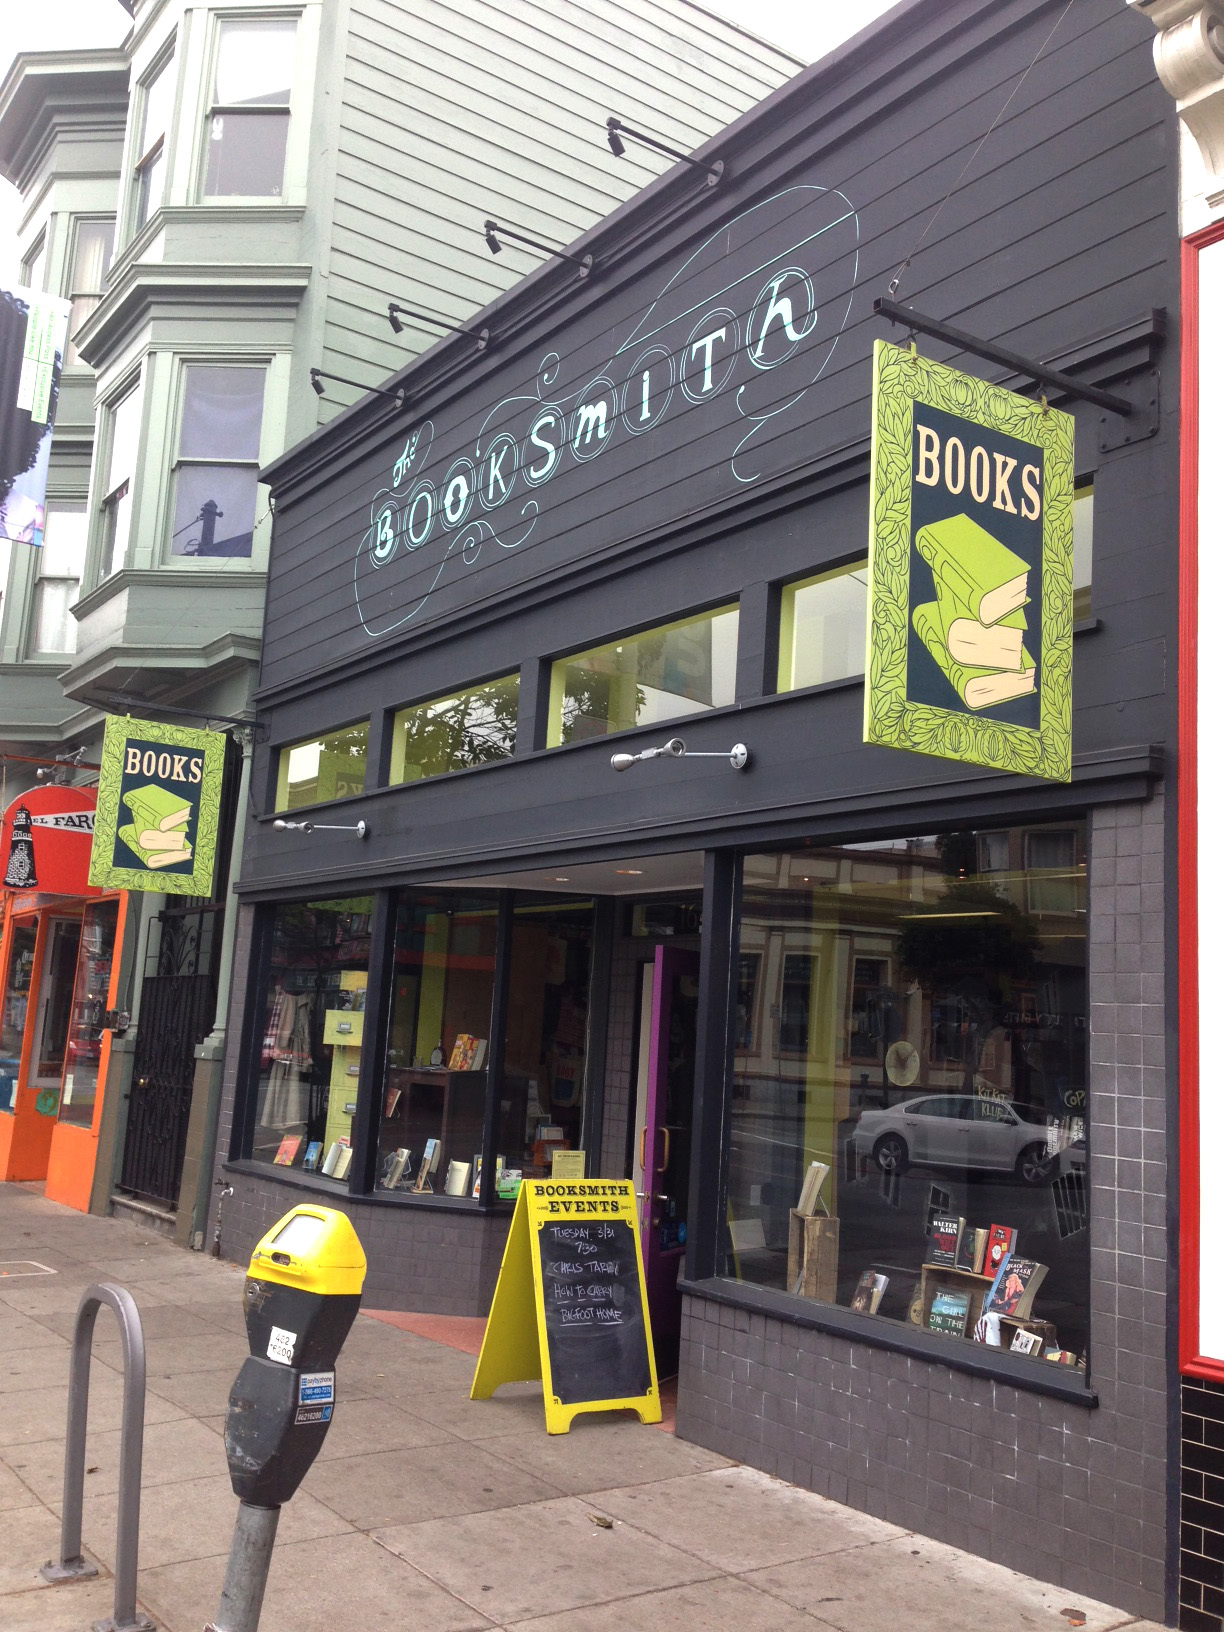 The Booksmith